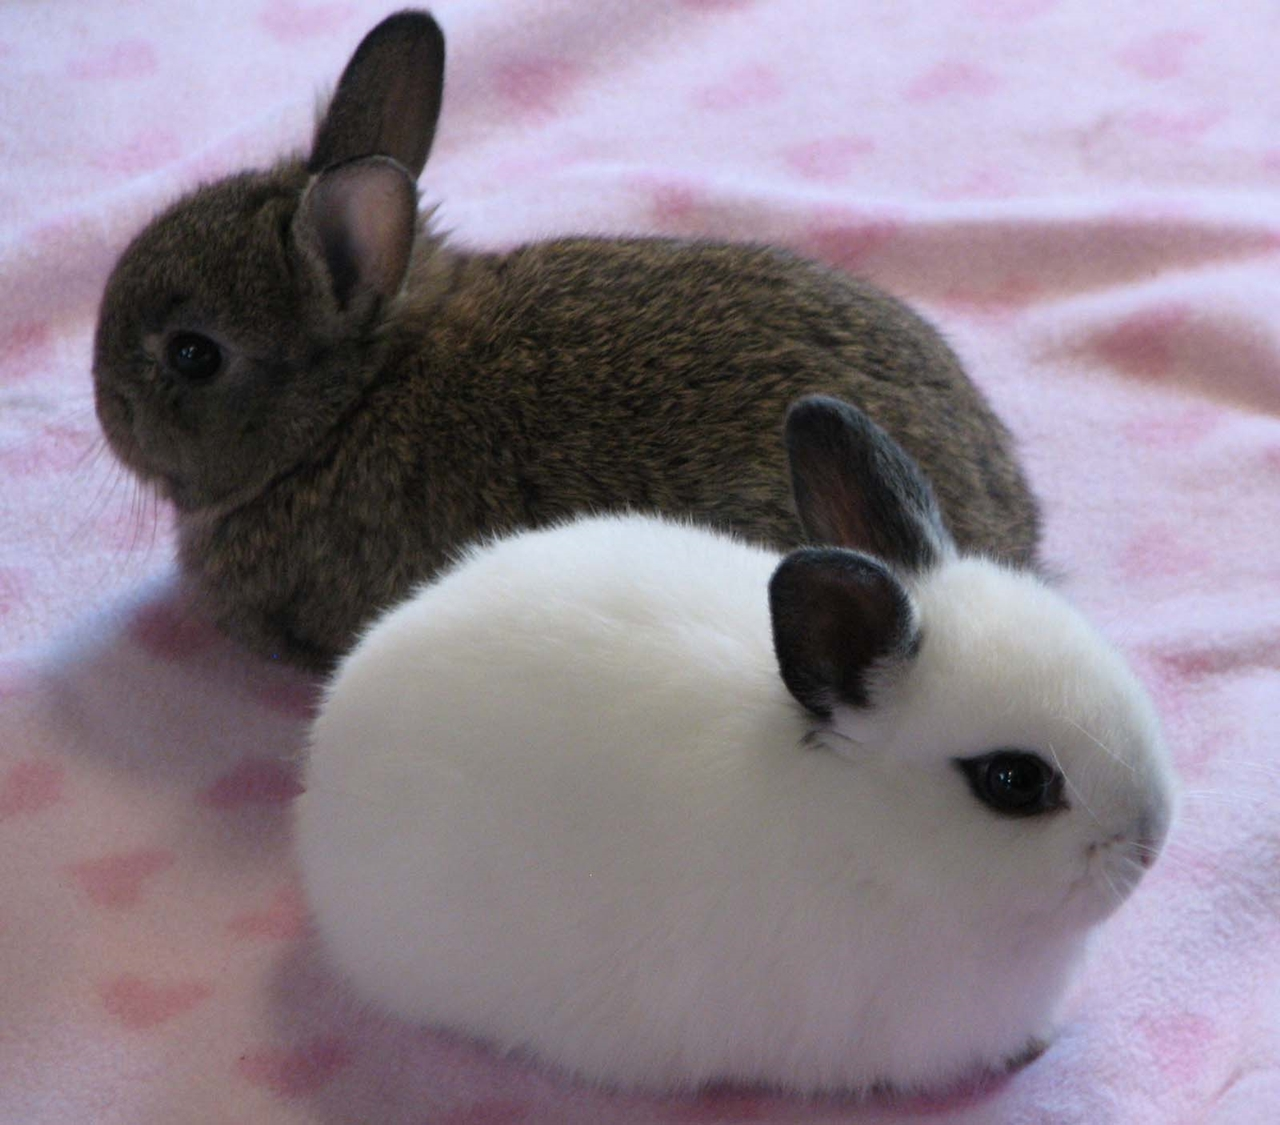 Funny and cute rabbits 10